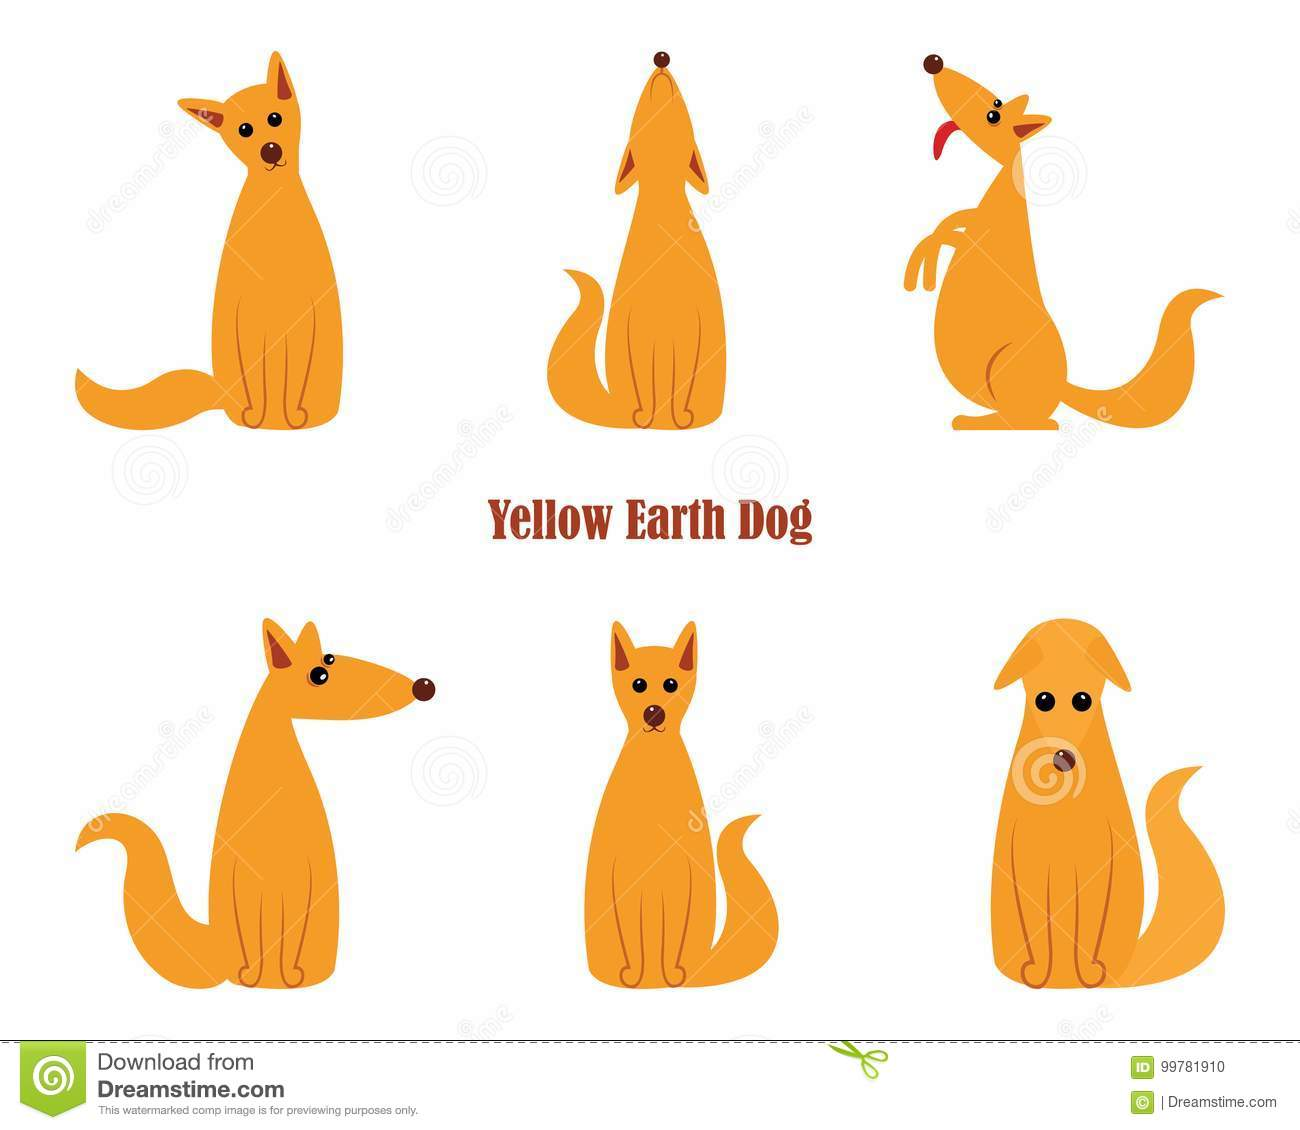 Dog Is Symbol Of New 2018 Year According To Chinese Calendar Year